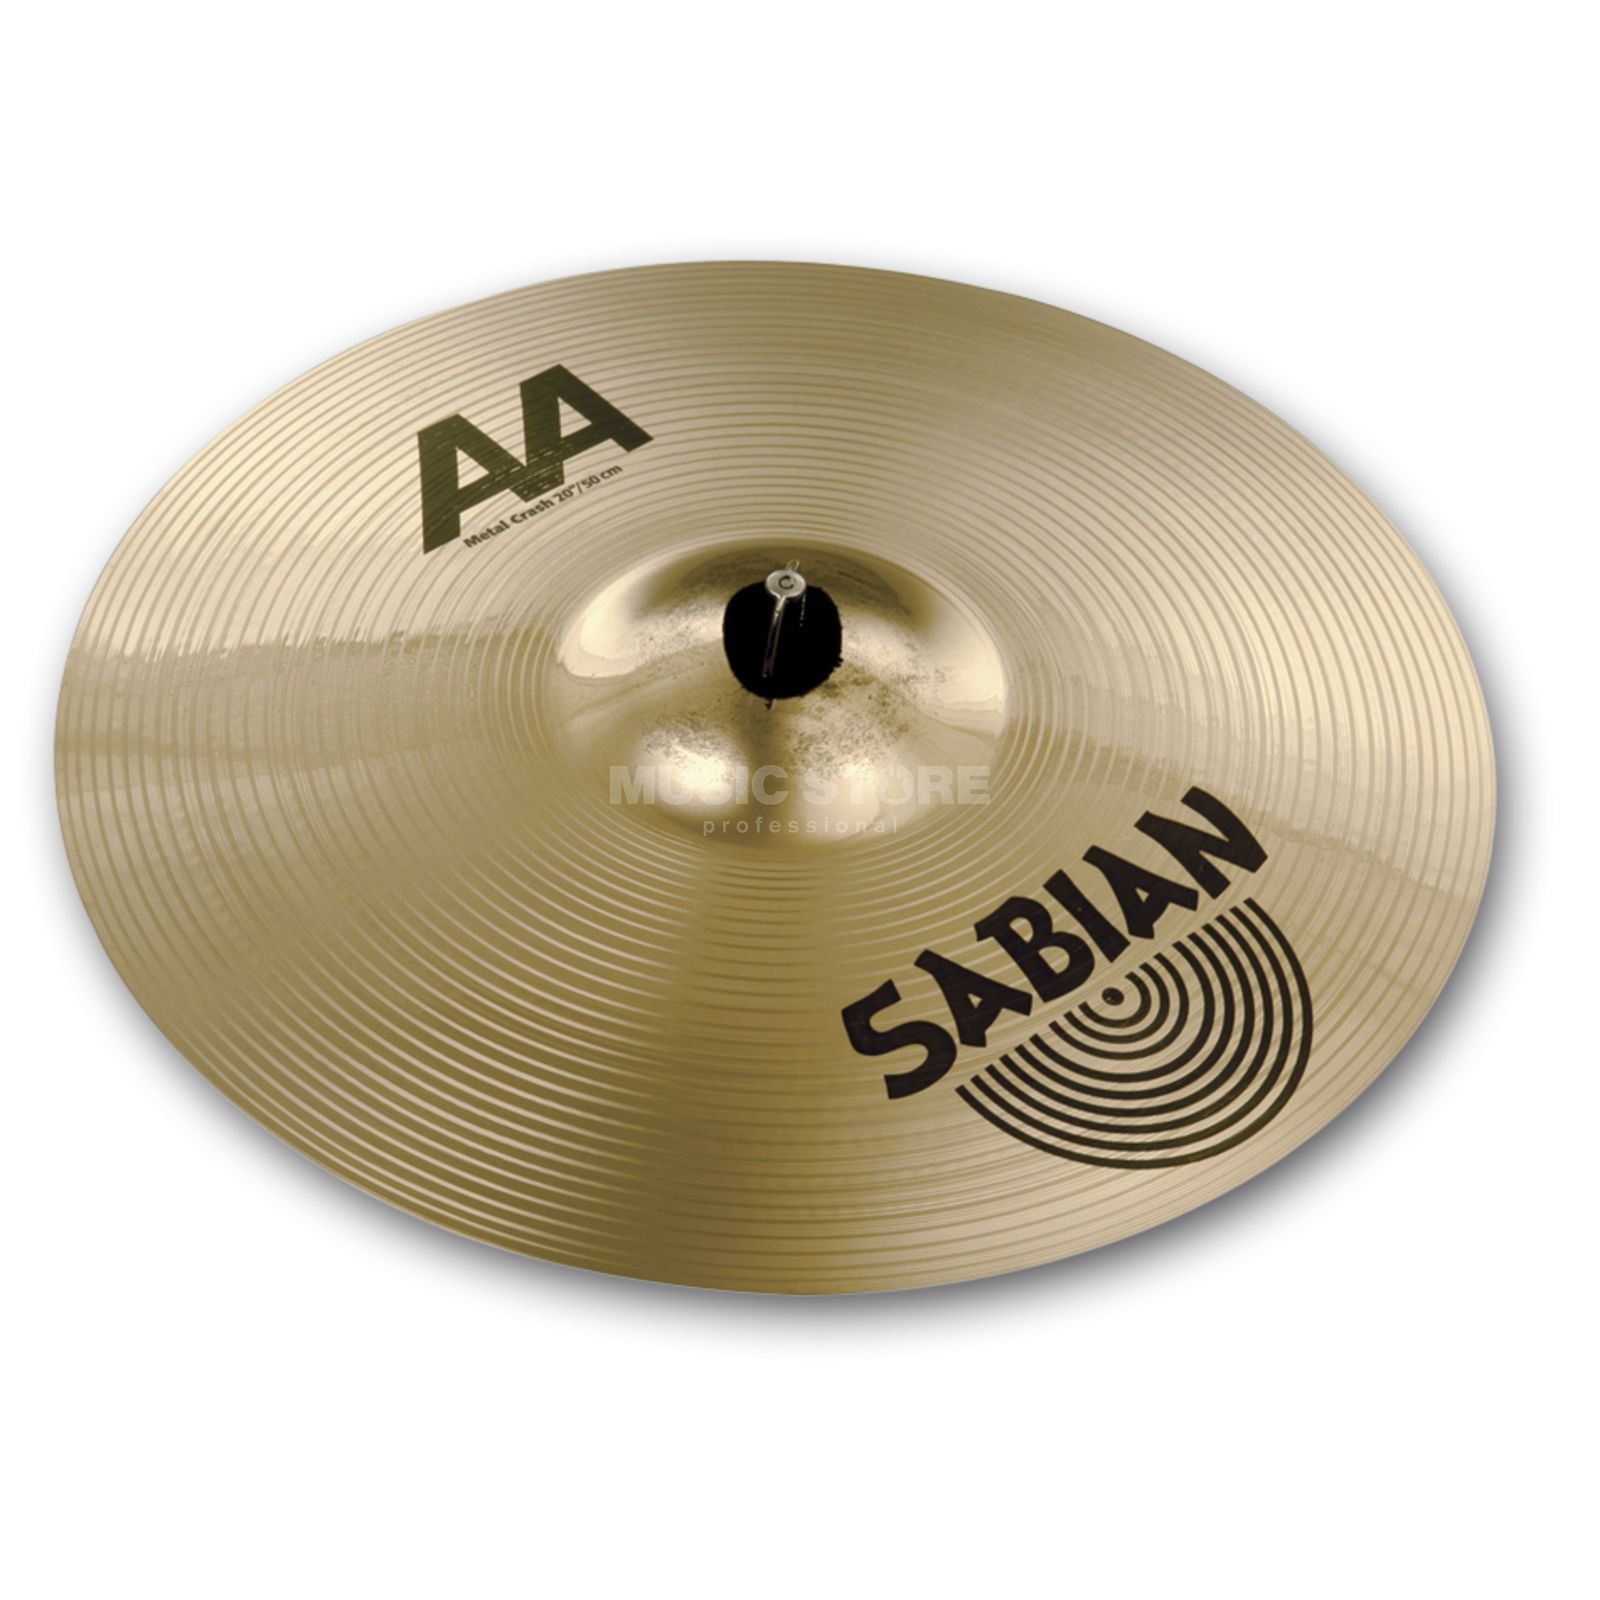 "Sabian AA Metal Crash 20"" Brilliant Finish Produktbild"